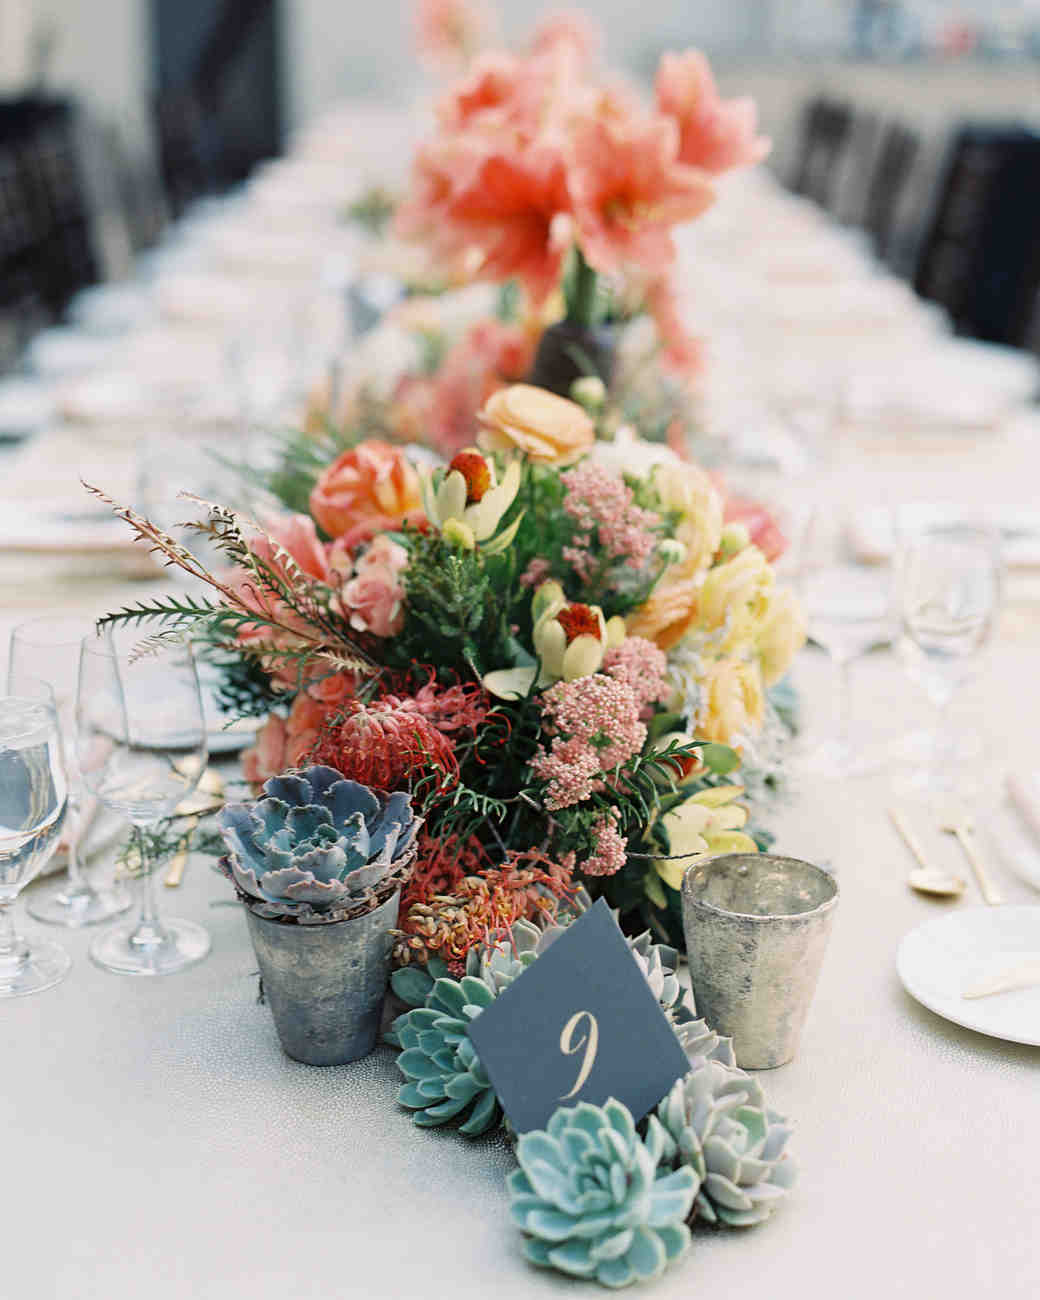 Flower Arrangement Ideas For Weddings: 75 Great Wedding Centerpieces